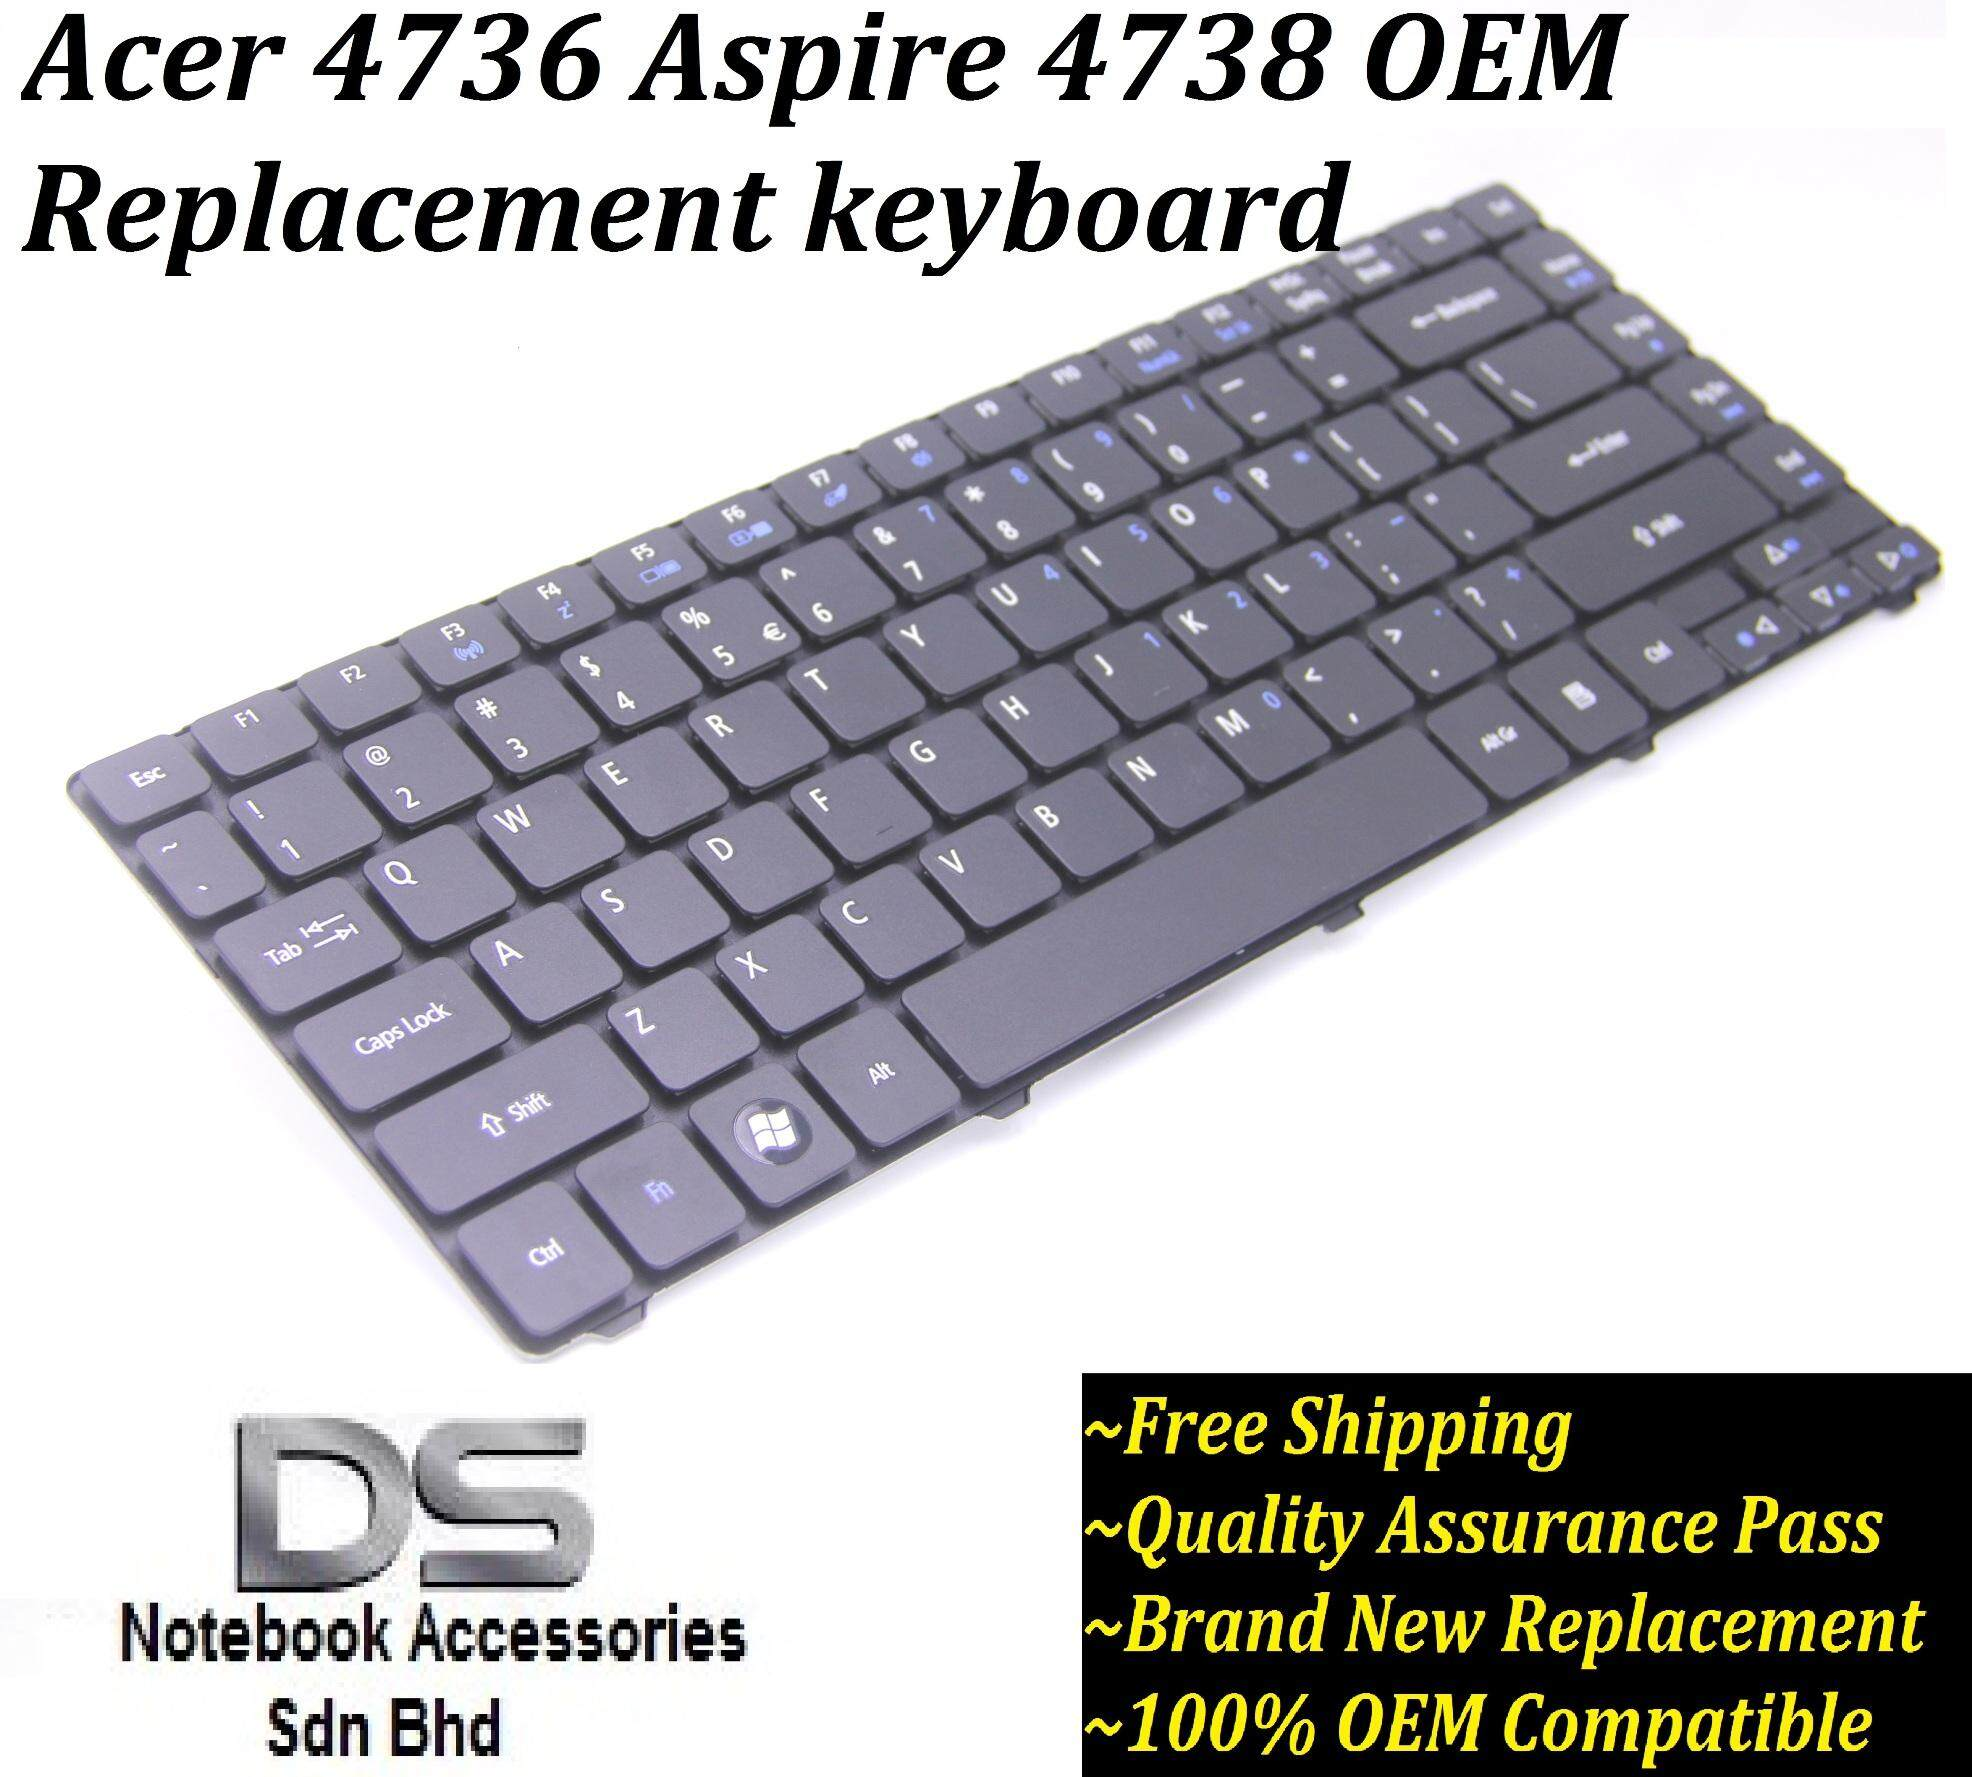 Replacement/Compatible Laptop Keyboard for Acer Aspire 4738Z /Acer 4736 Replacement Keyboard